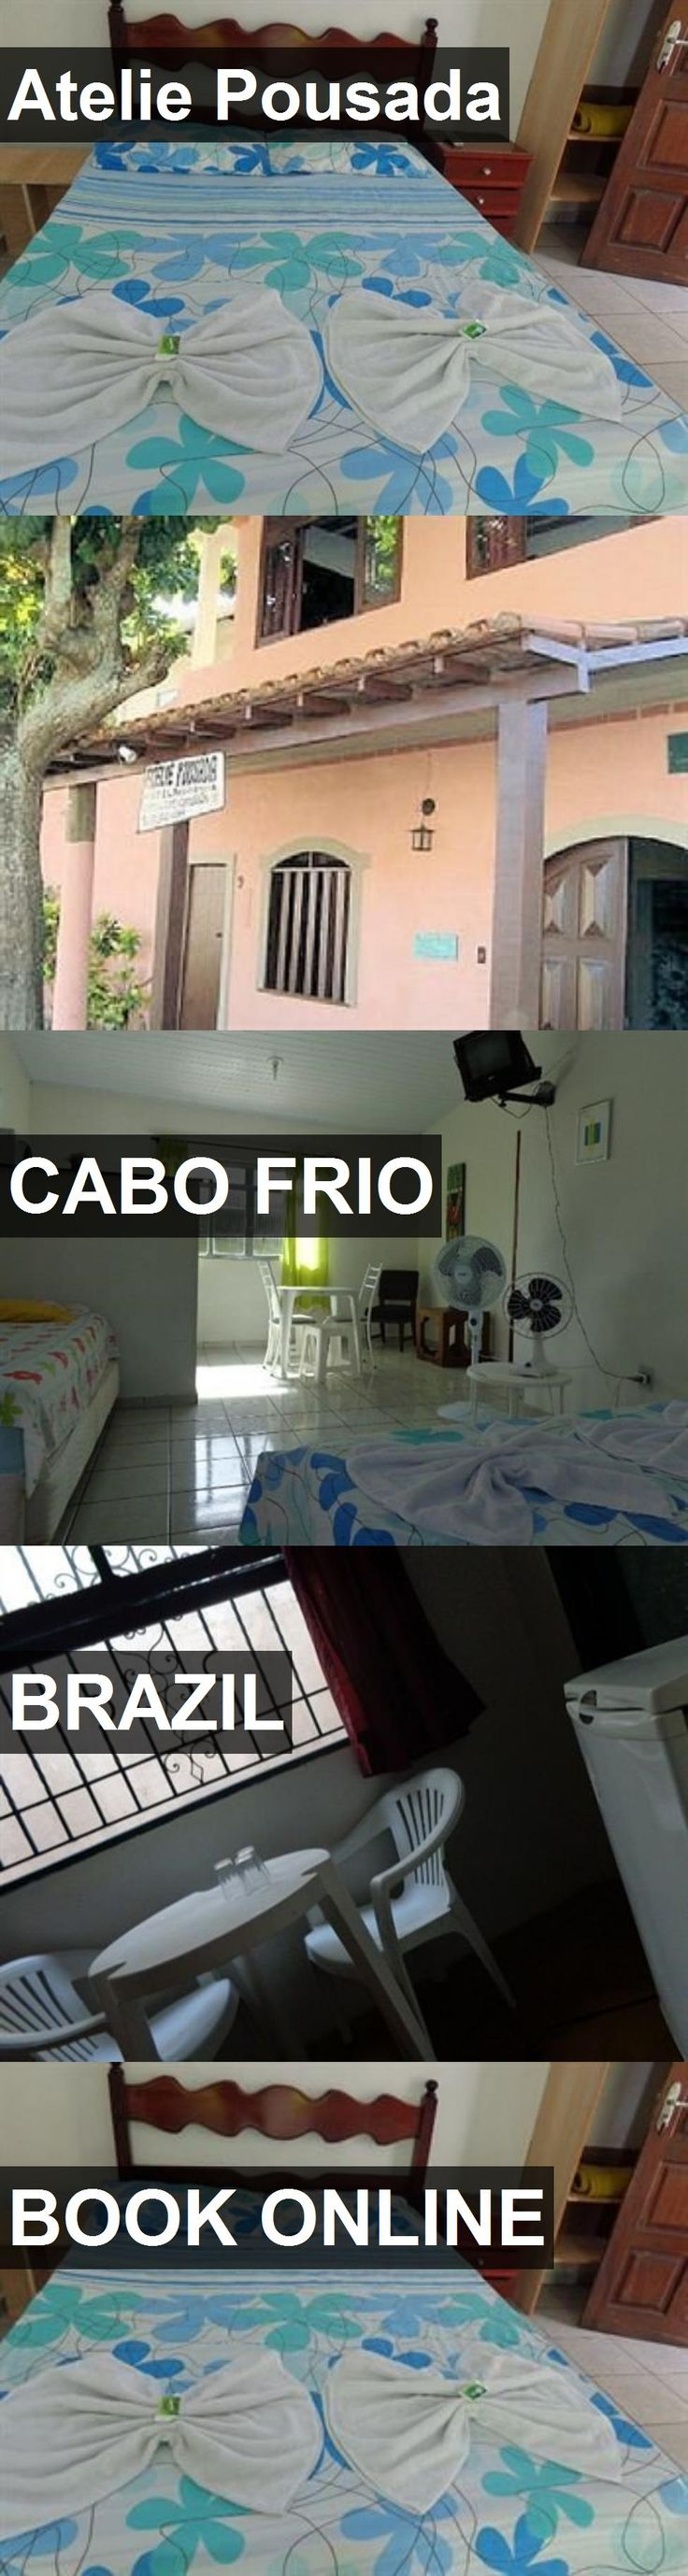 Hotel Atelie Pousada in Cabo Frio, Brazil. For more information, photos, reviews and best prices please follow the link. #Brazil #CaboFrio #travel #vacation #hotel